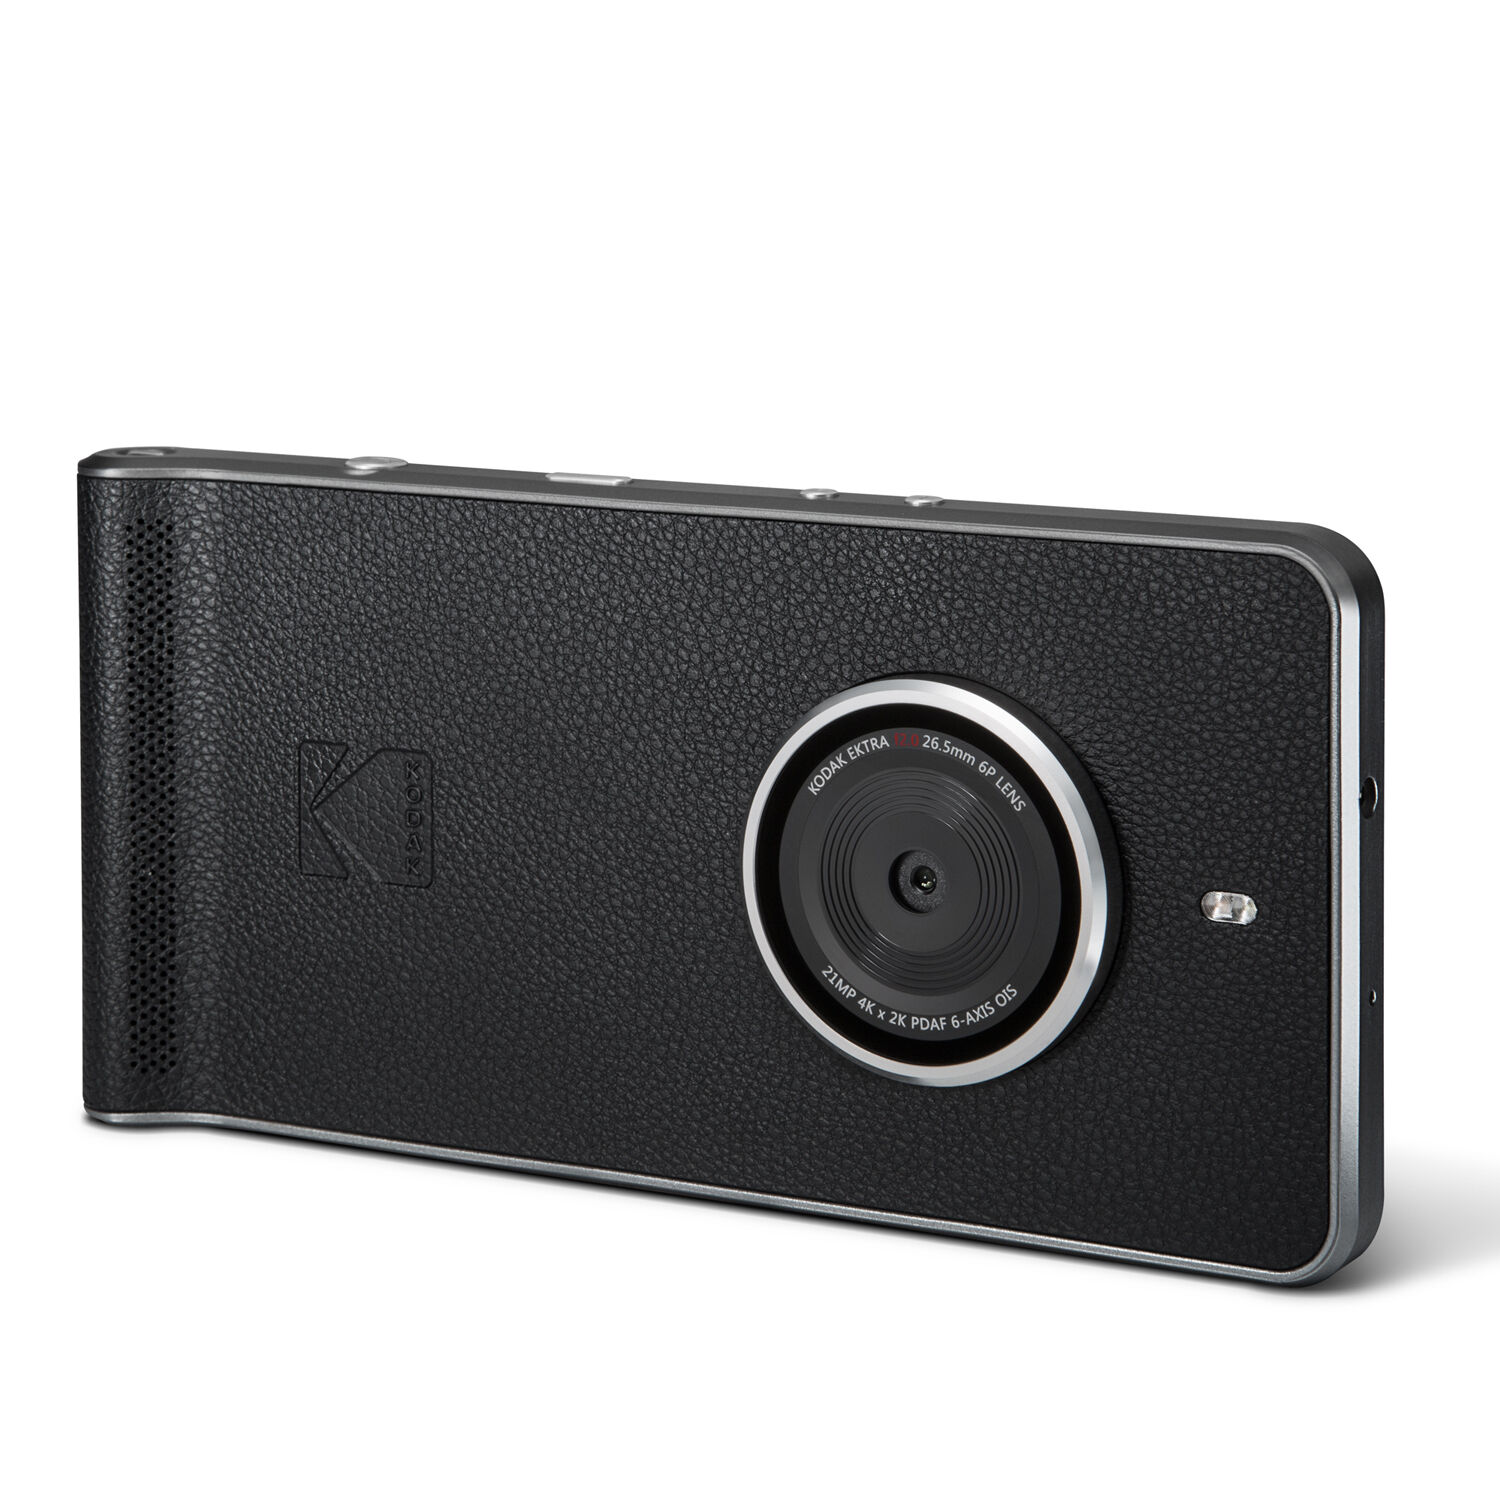 $109.99 - Kodak EKTRA photography smartphone camera Unlocked GSM 32GB LED phone 4G LTE USA